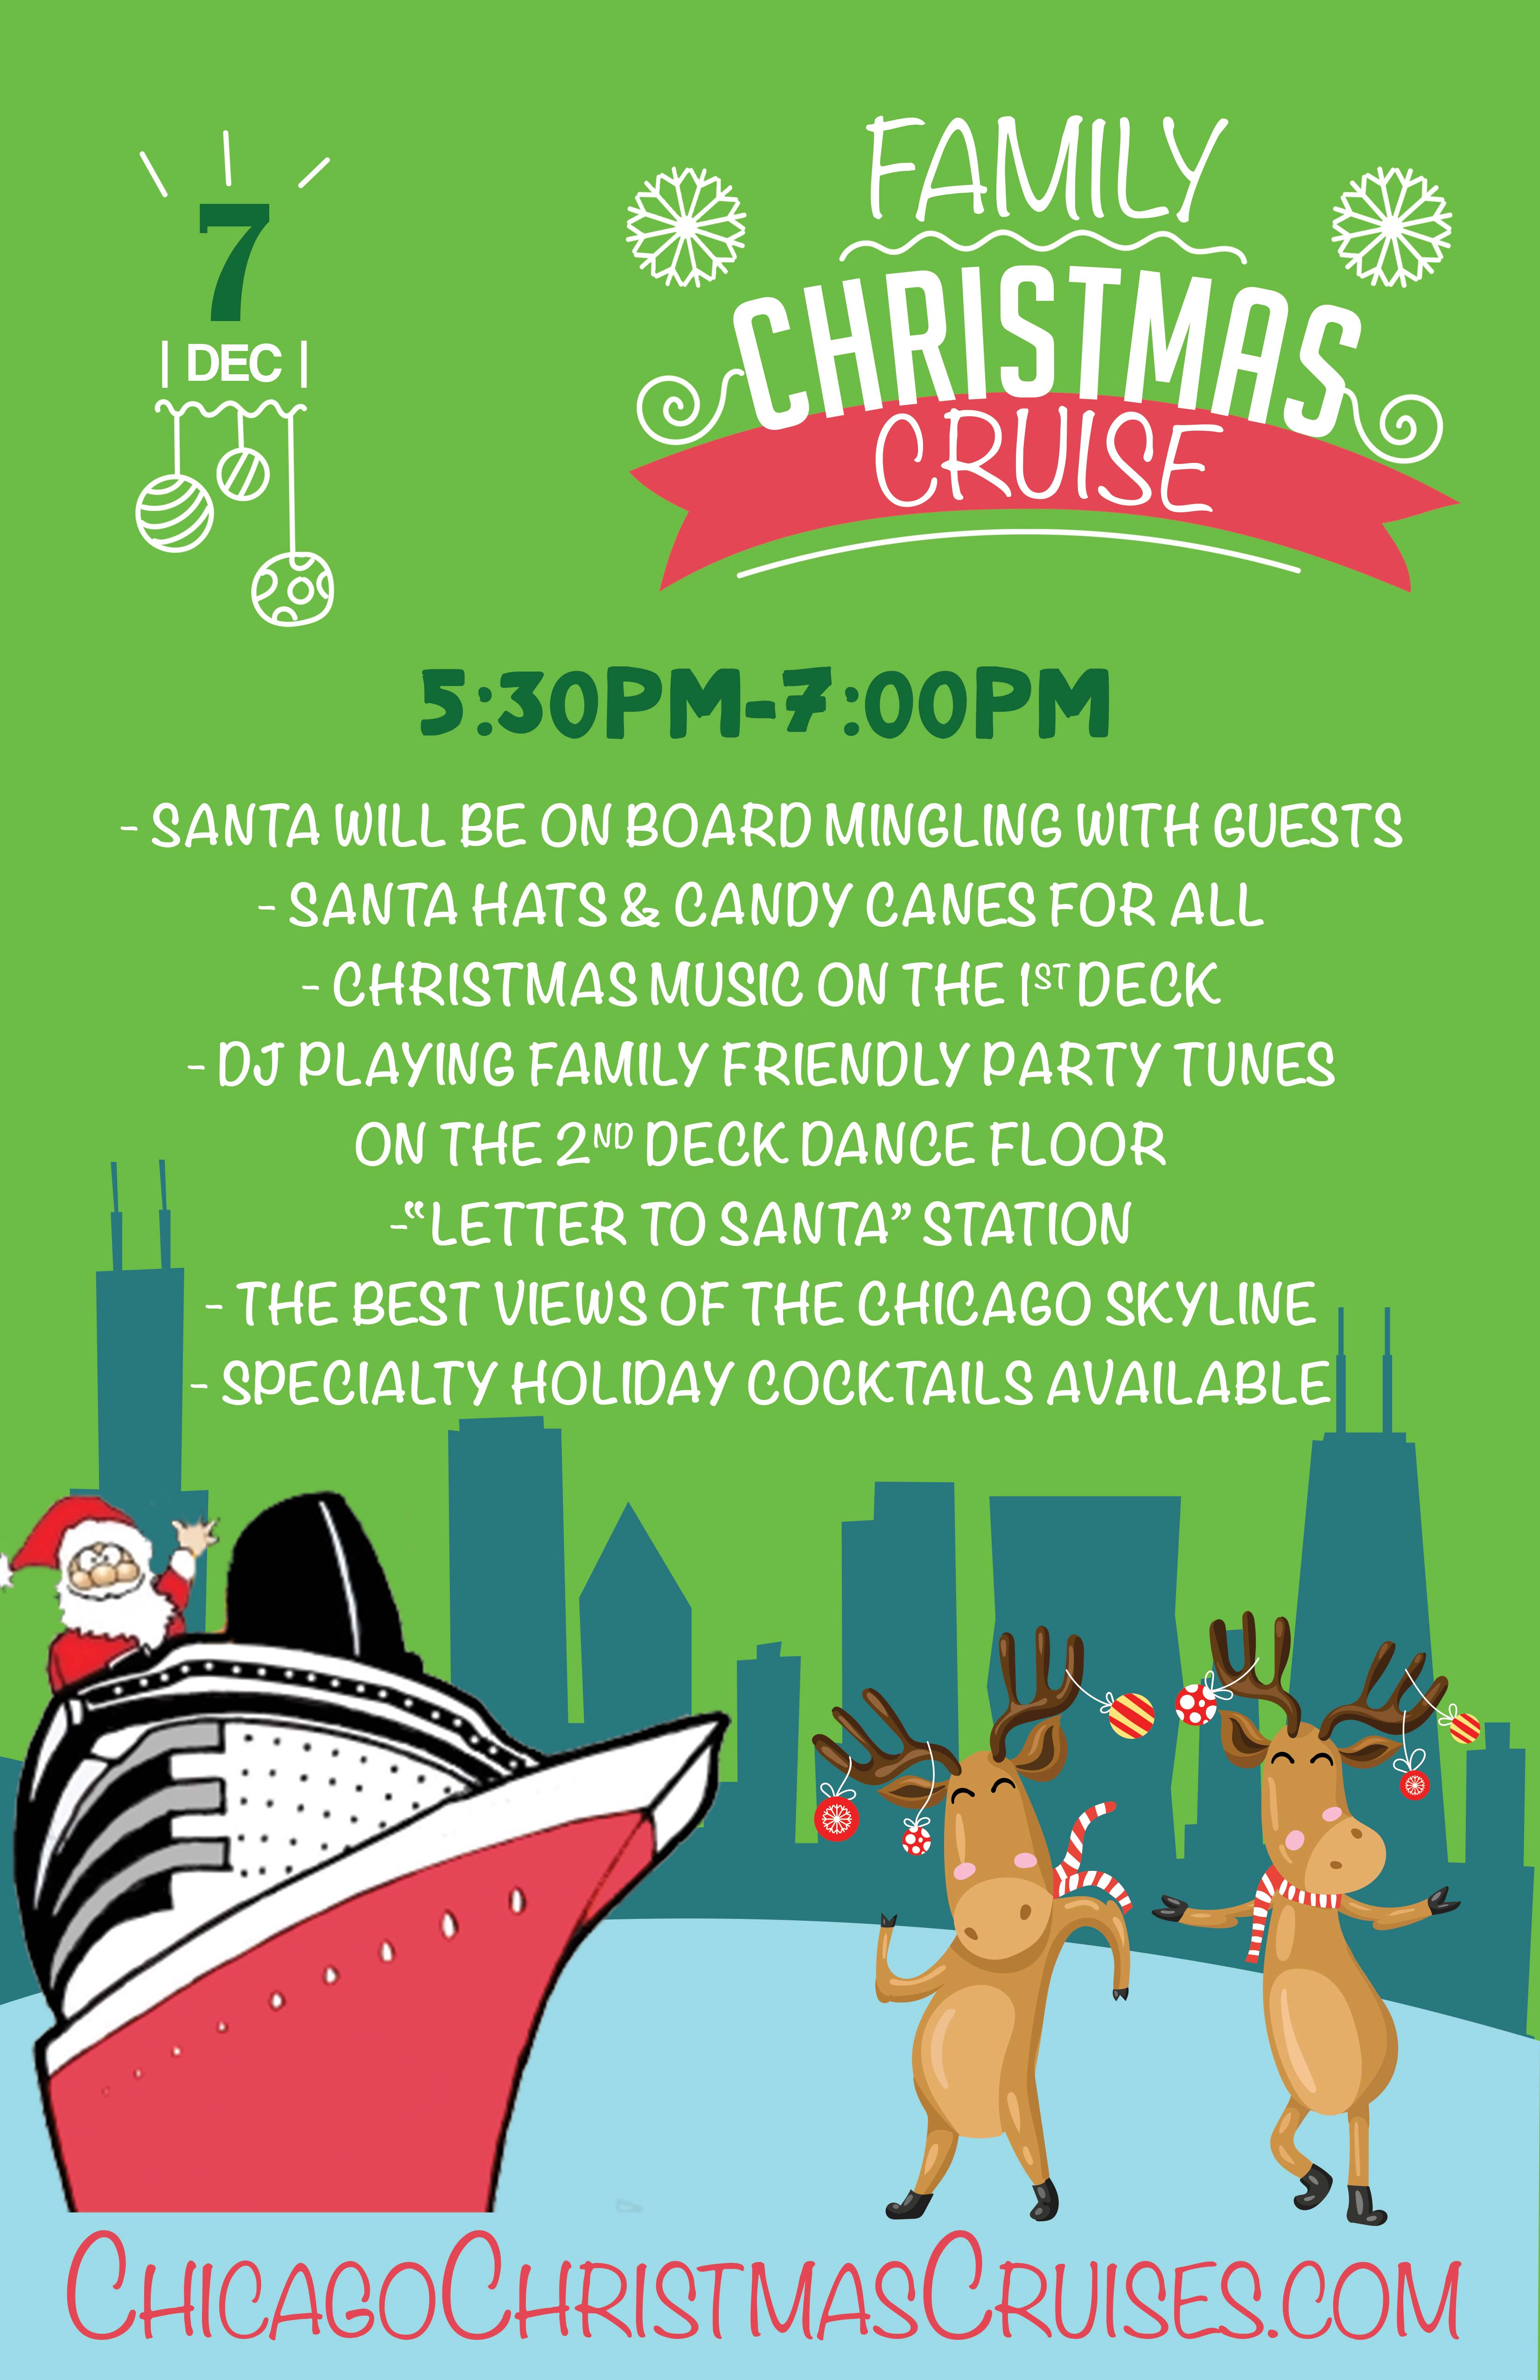 Chicago Family Christmas Cruise Party on Lake Michigan - Santa will be on board, Candy Canes for All, Dance Floor and more!